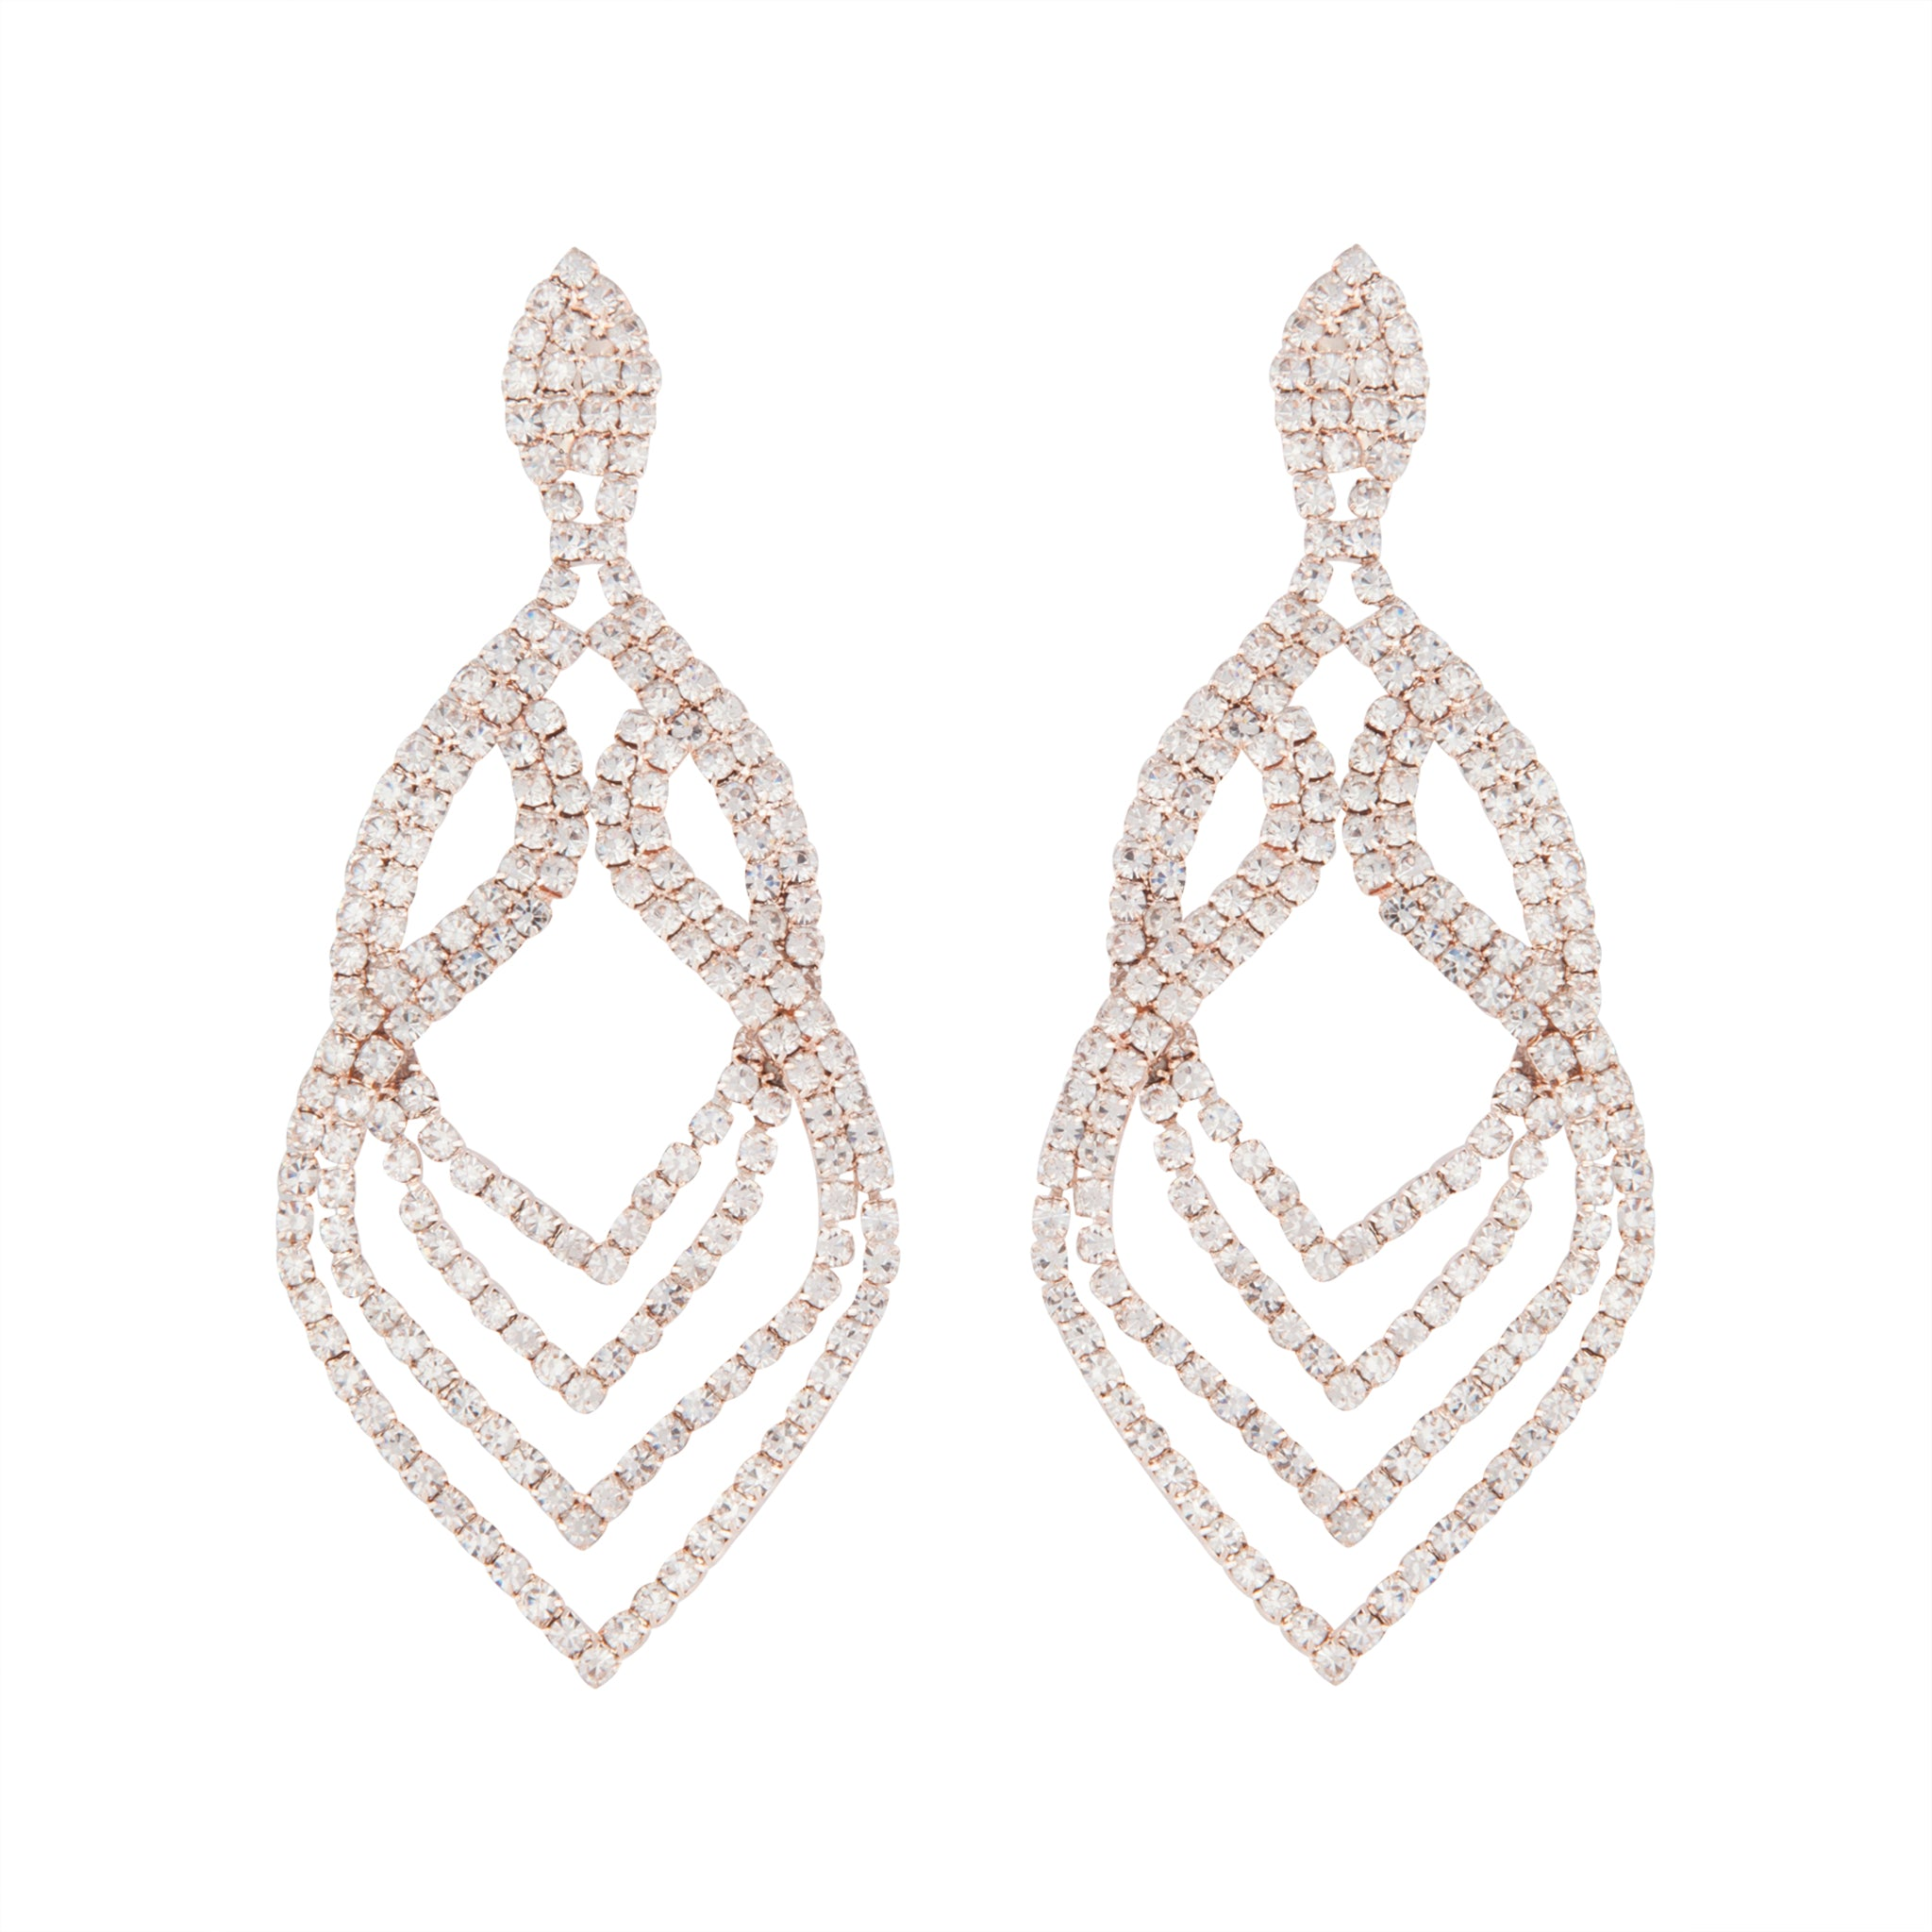 2a9ac132a Statement Earrings | Lovisa Jewellery Australia